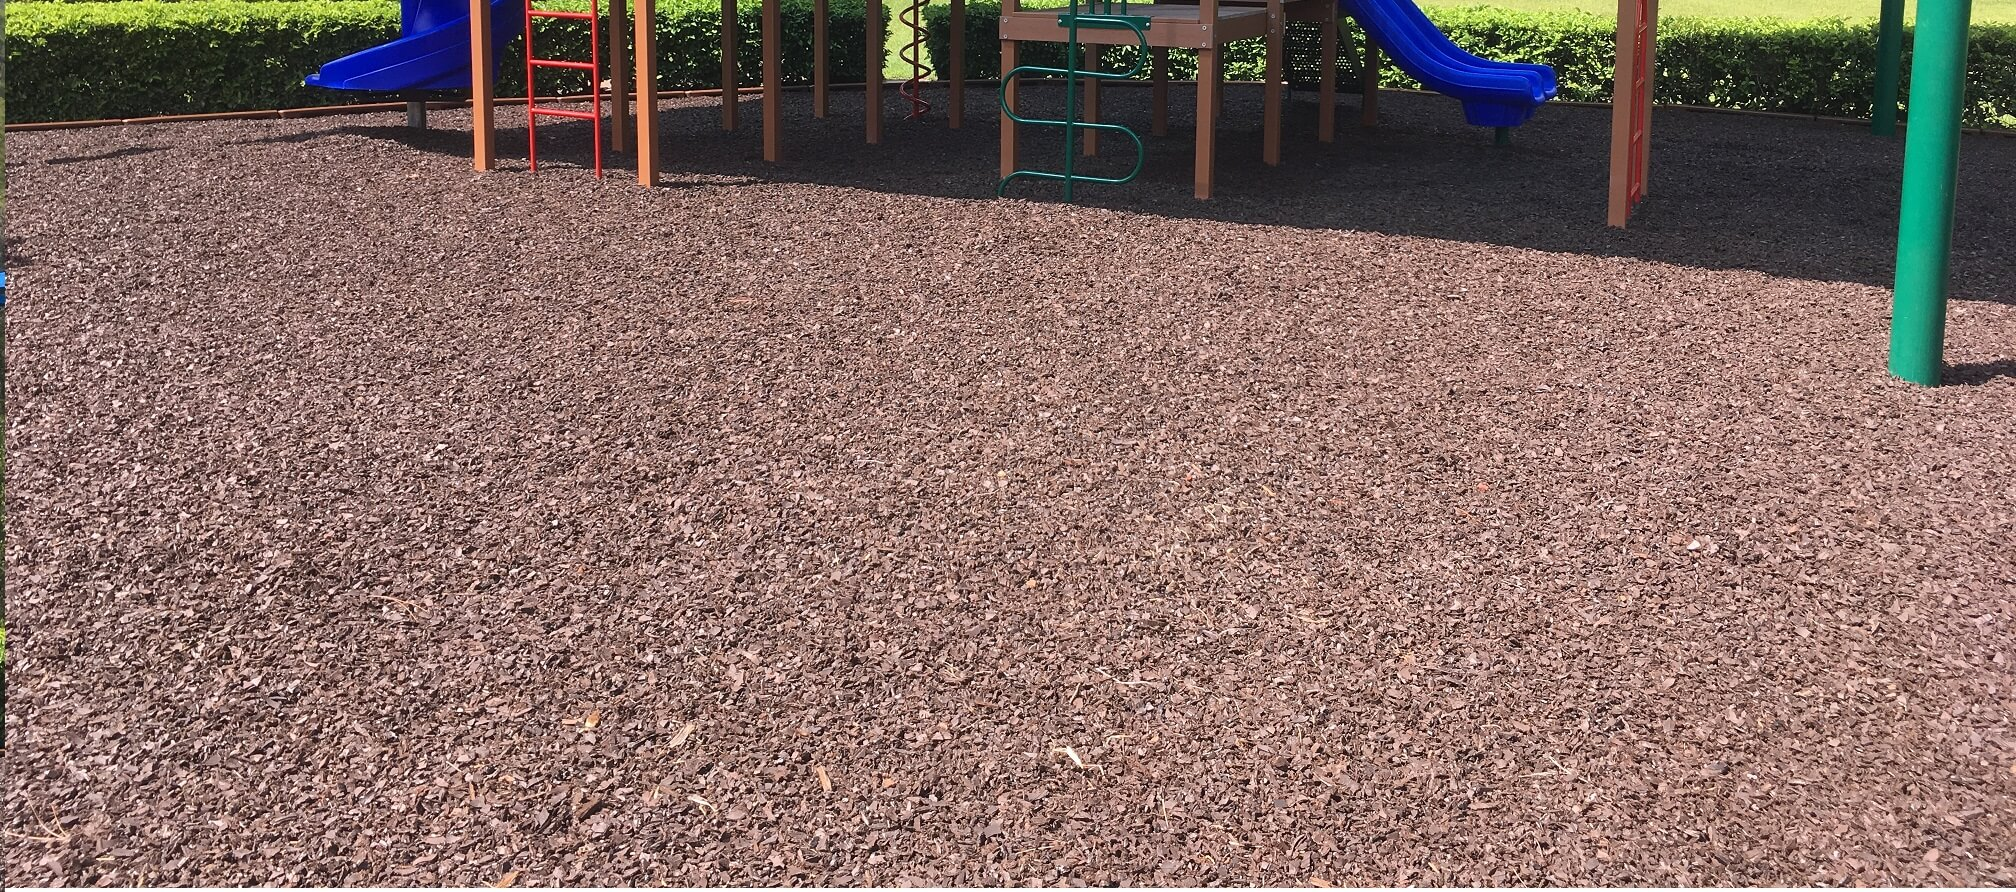 Rubber Mulch: Long-lasting And Natural-looking